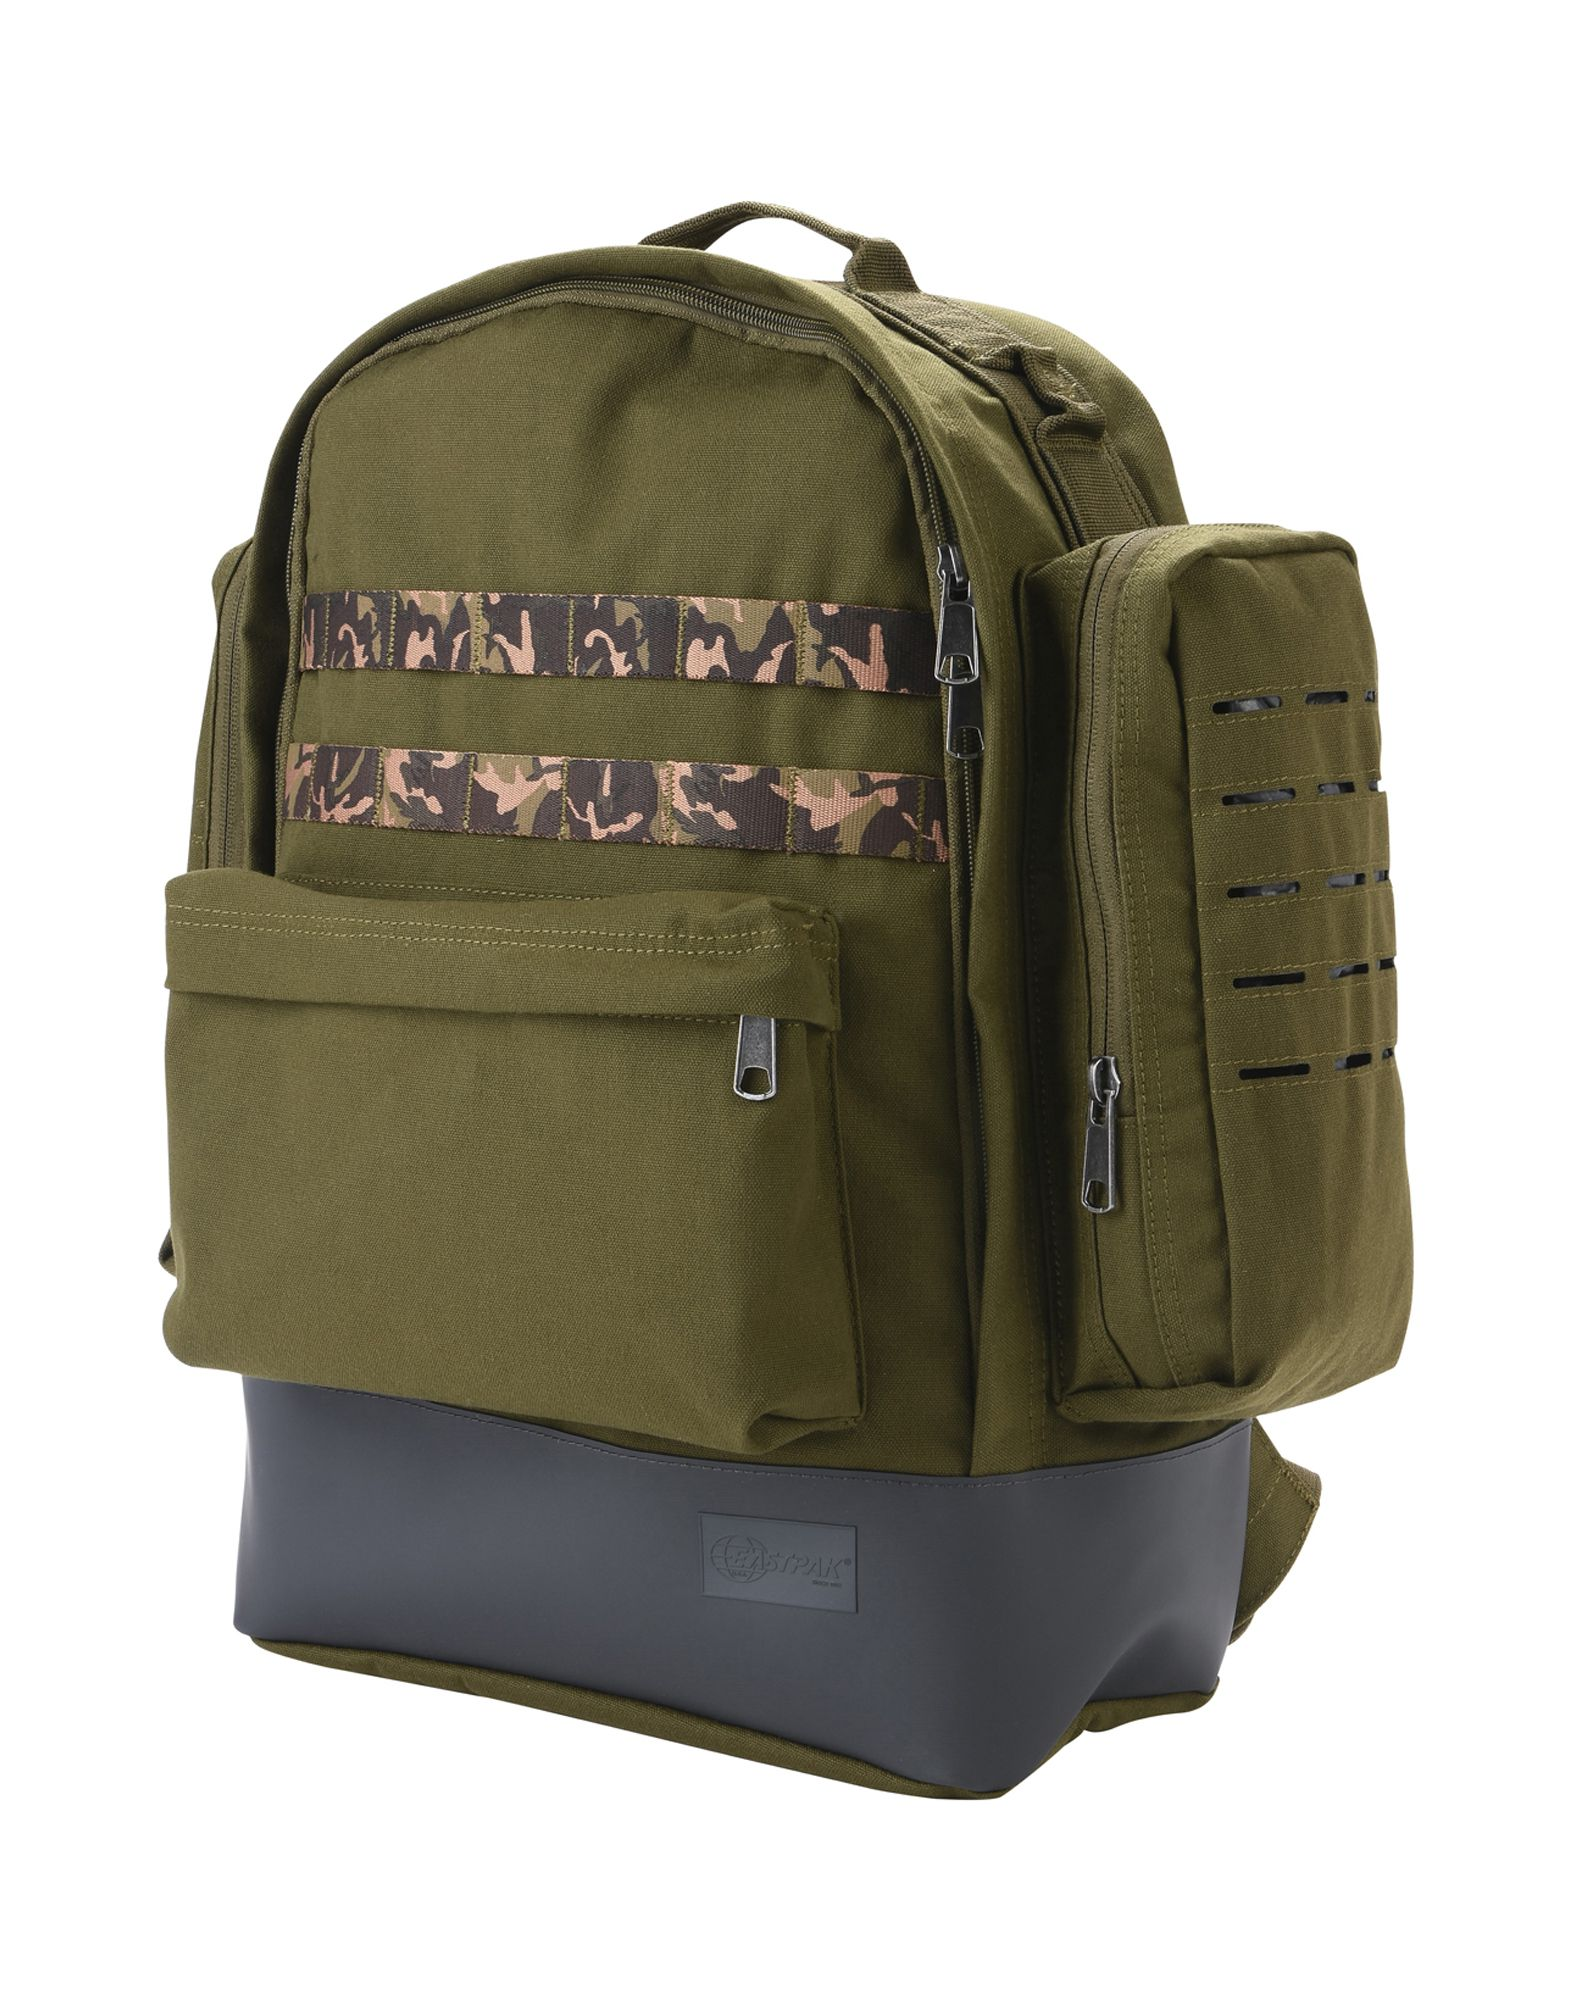 Zaini & Marsupi Eastpak Killington Mt Khaki - Uomo - Acquista online su